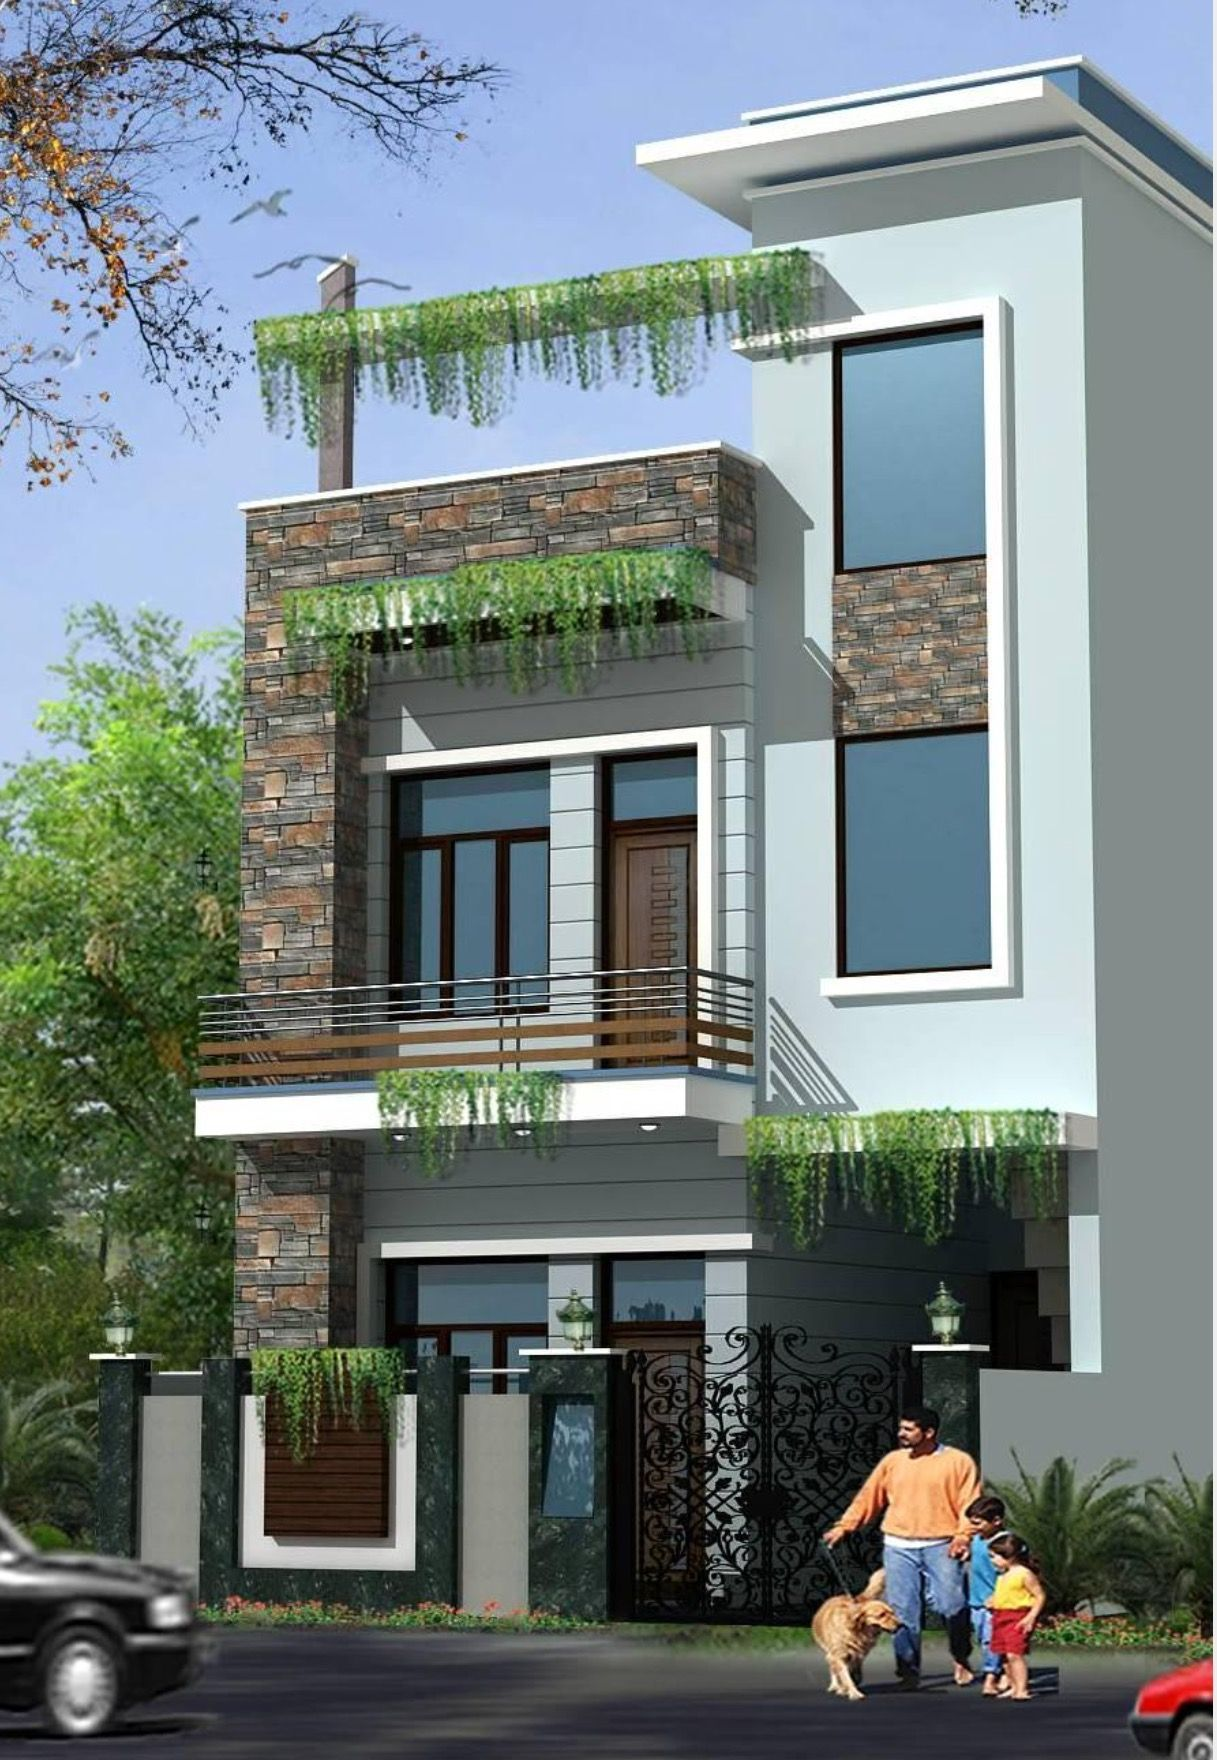 House Front Design Small House Elevation Design Architectural House Plans: House Front Design, House Exterior, Facade House